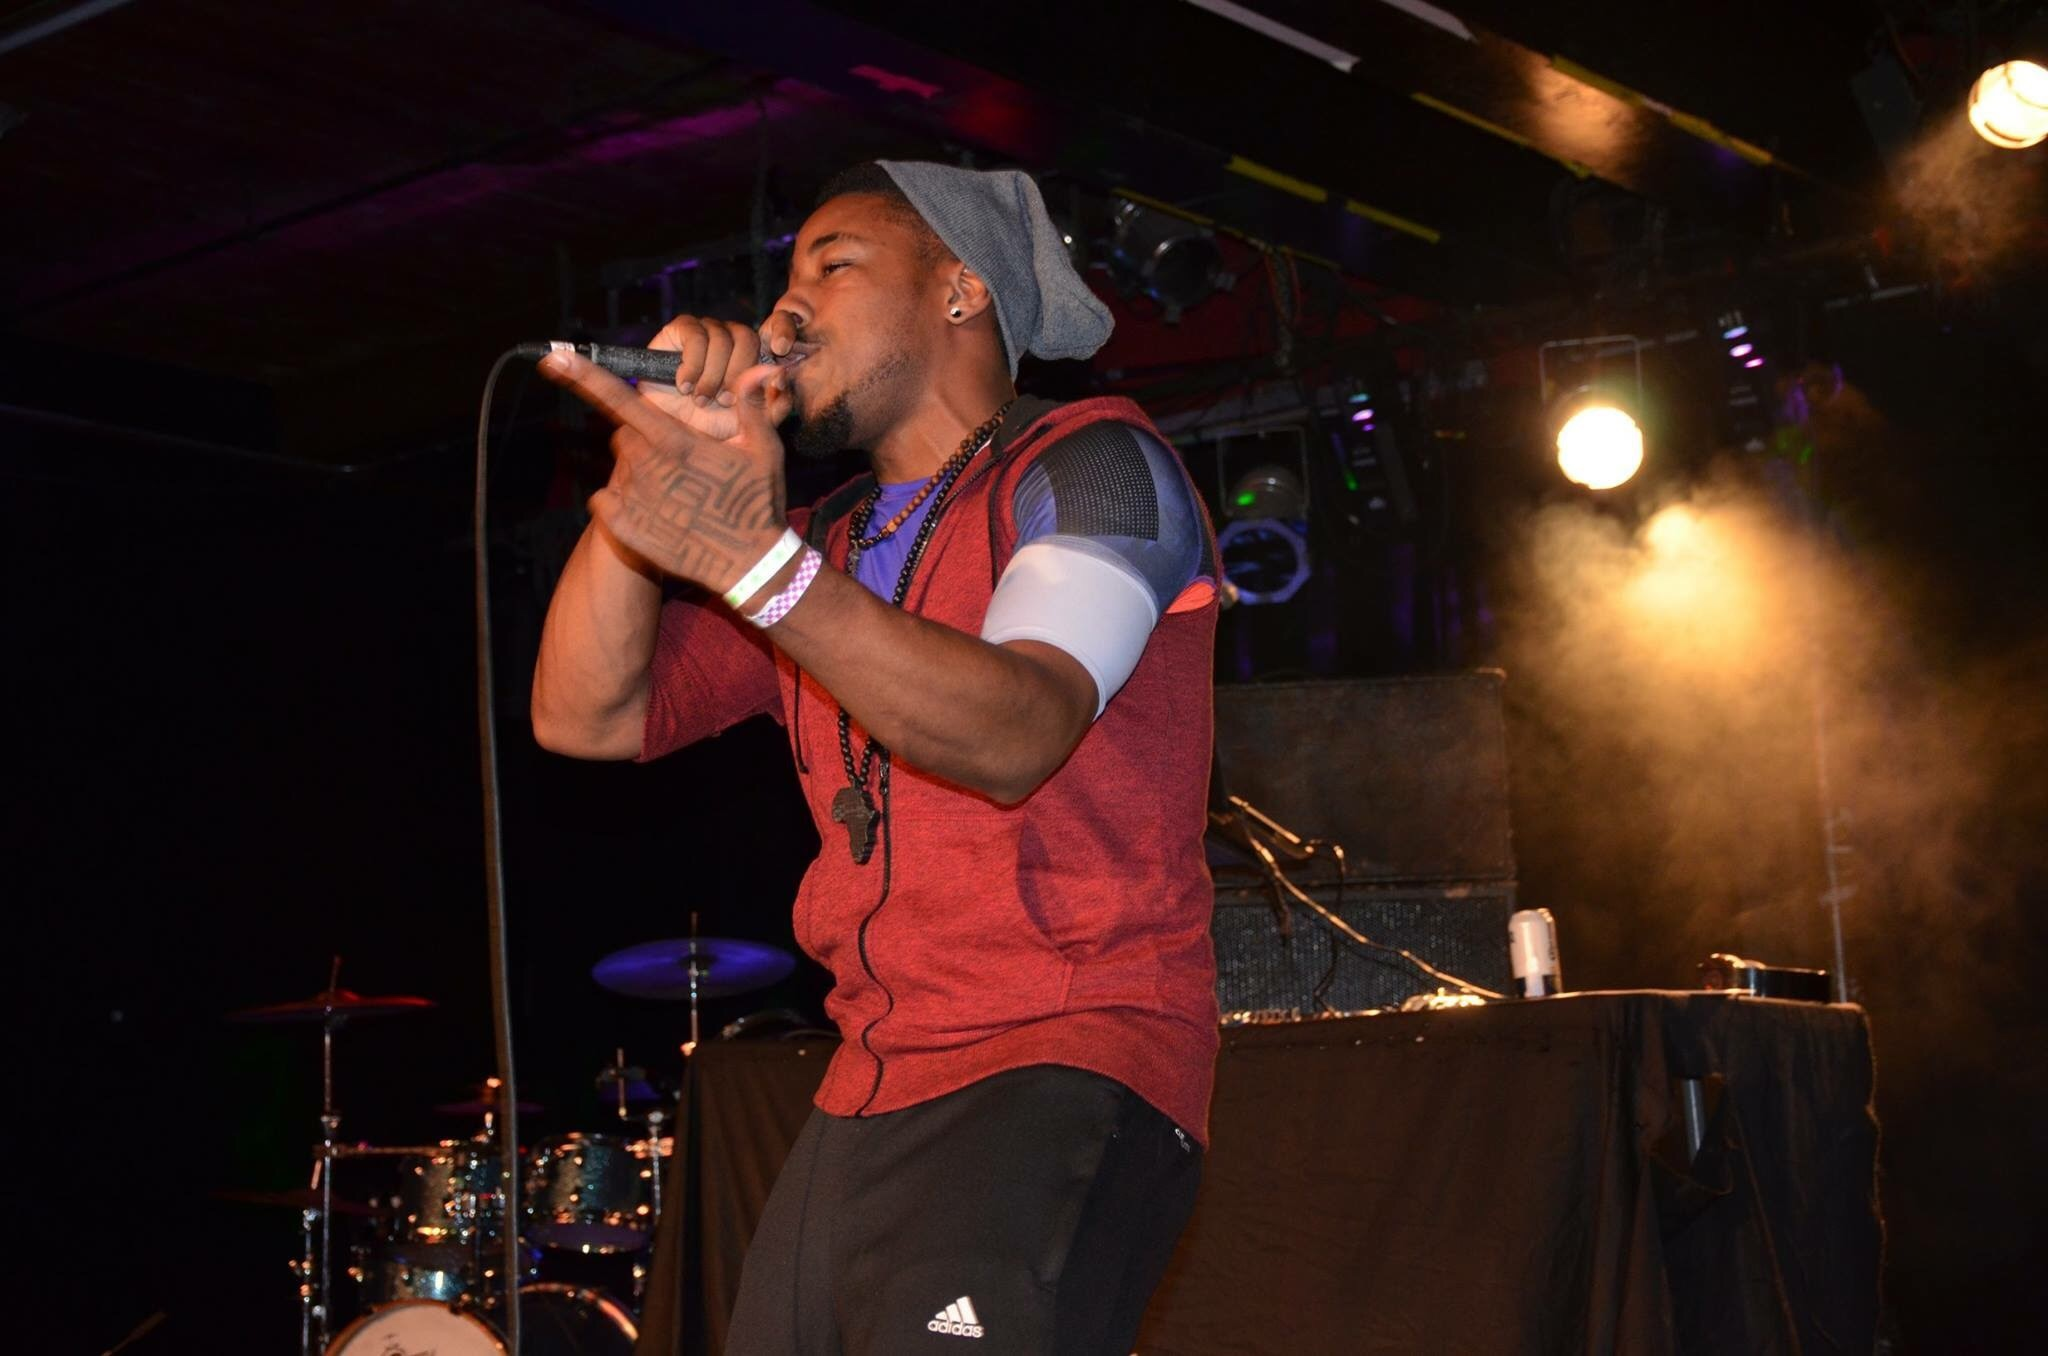 Doc ThaMADMan performance, Hustler Spirit Showcase at The Masquerade Atlanta 2015